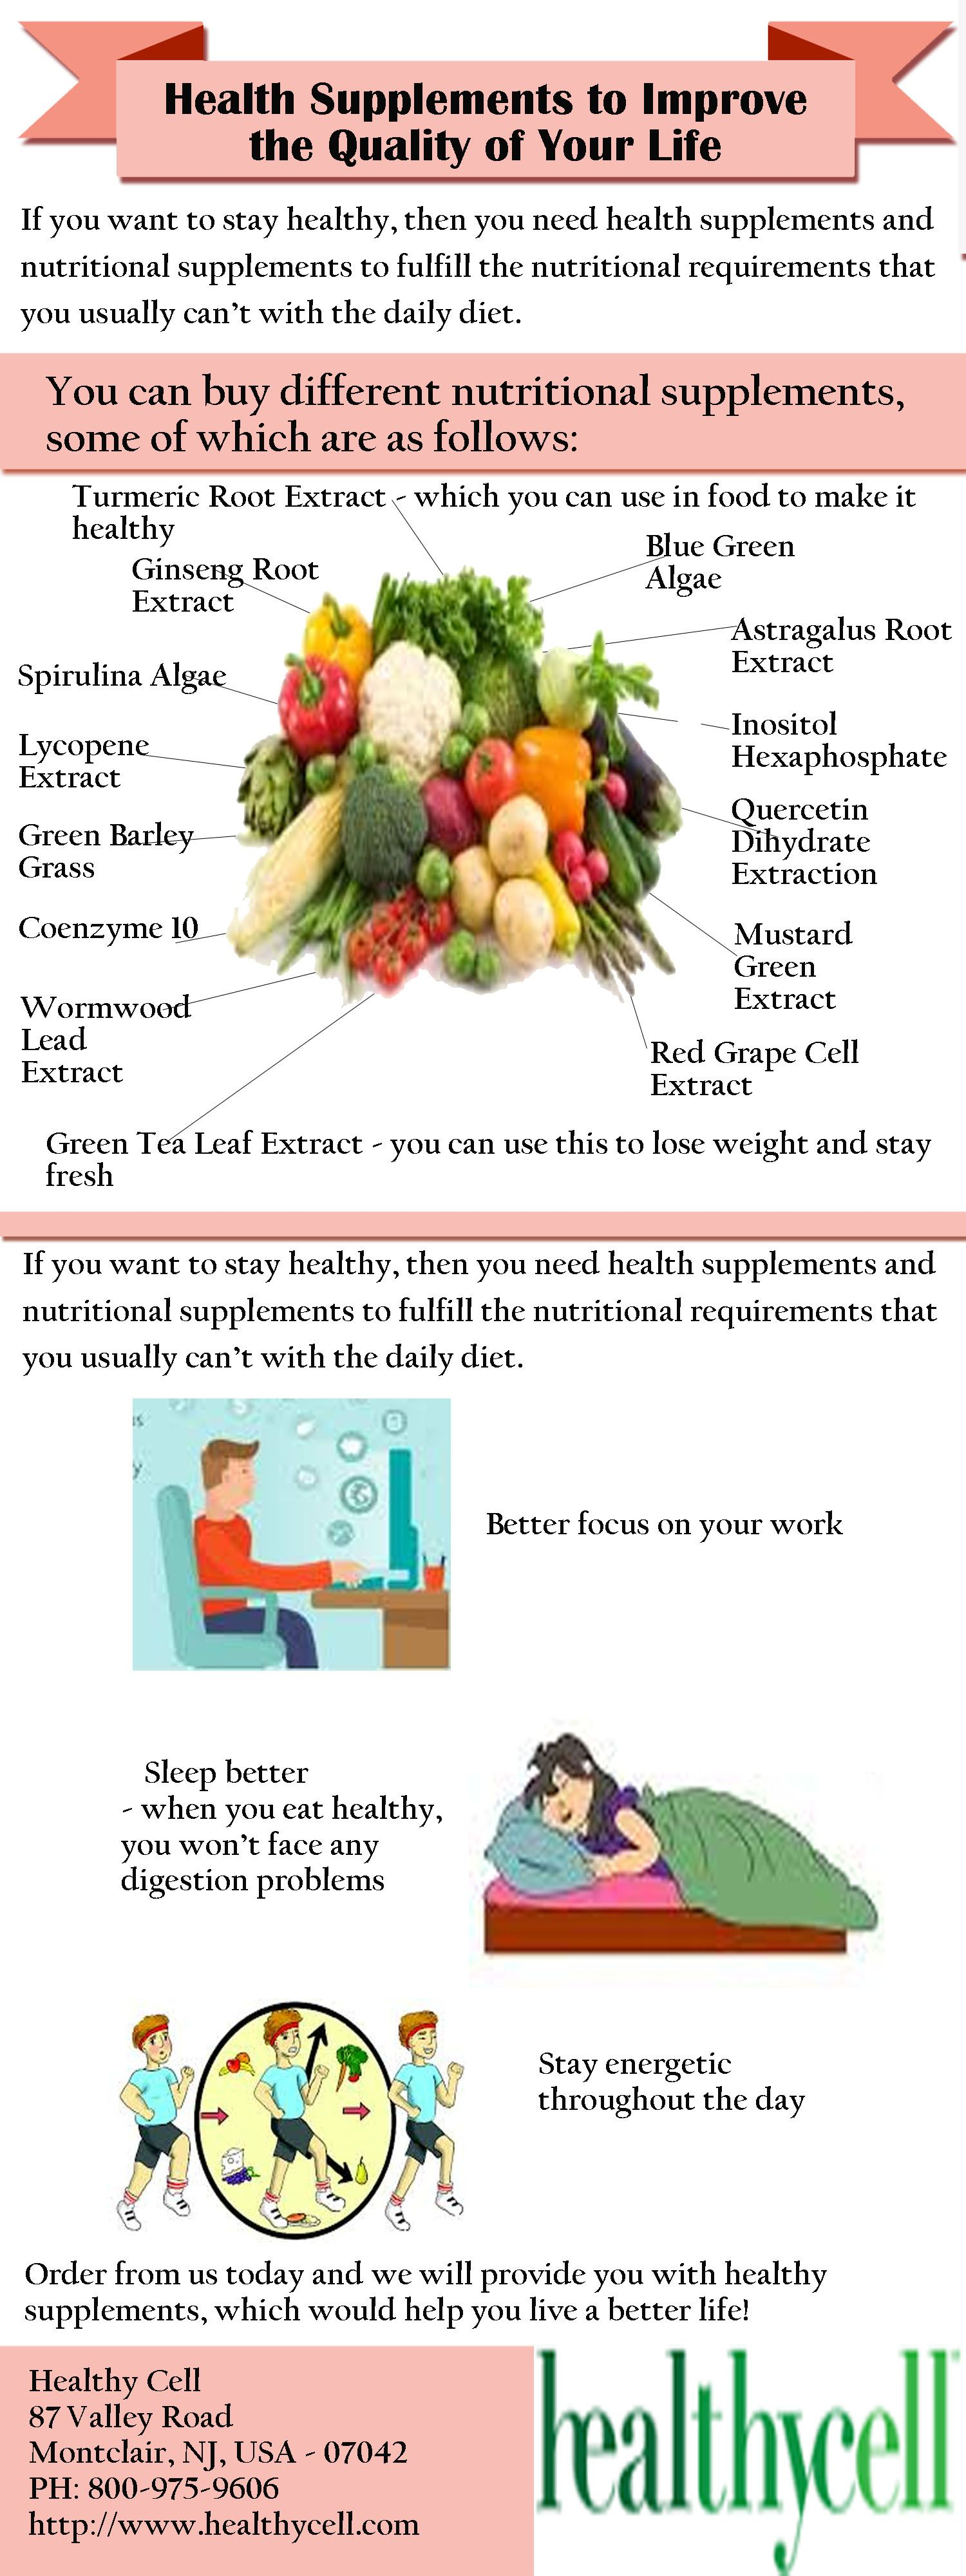 We know for a fact that if you improve your diet and eat healthy supplements, then you will be able to.Log on http://www.healthycell.com/